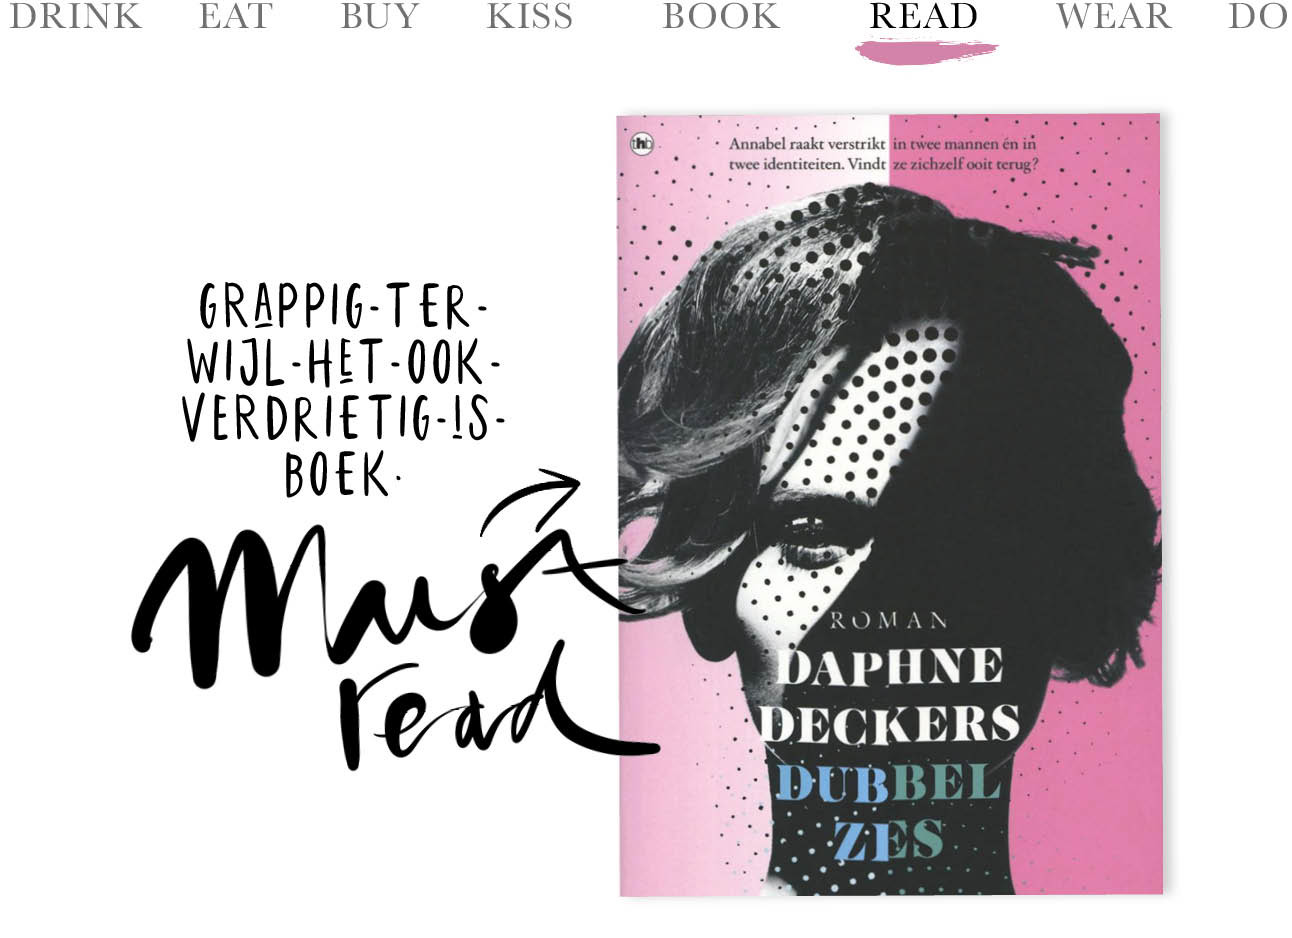 boek van daphne deckers, must read